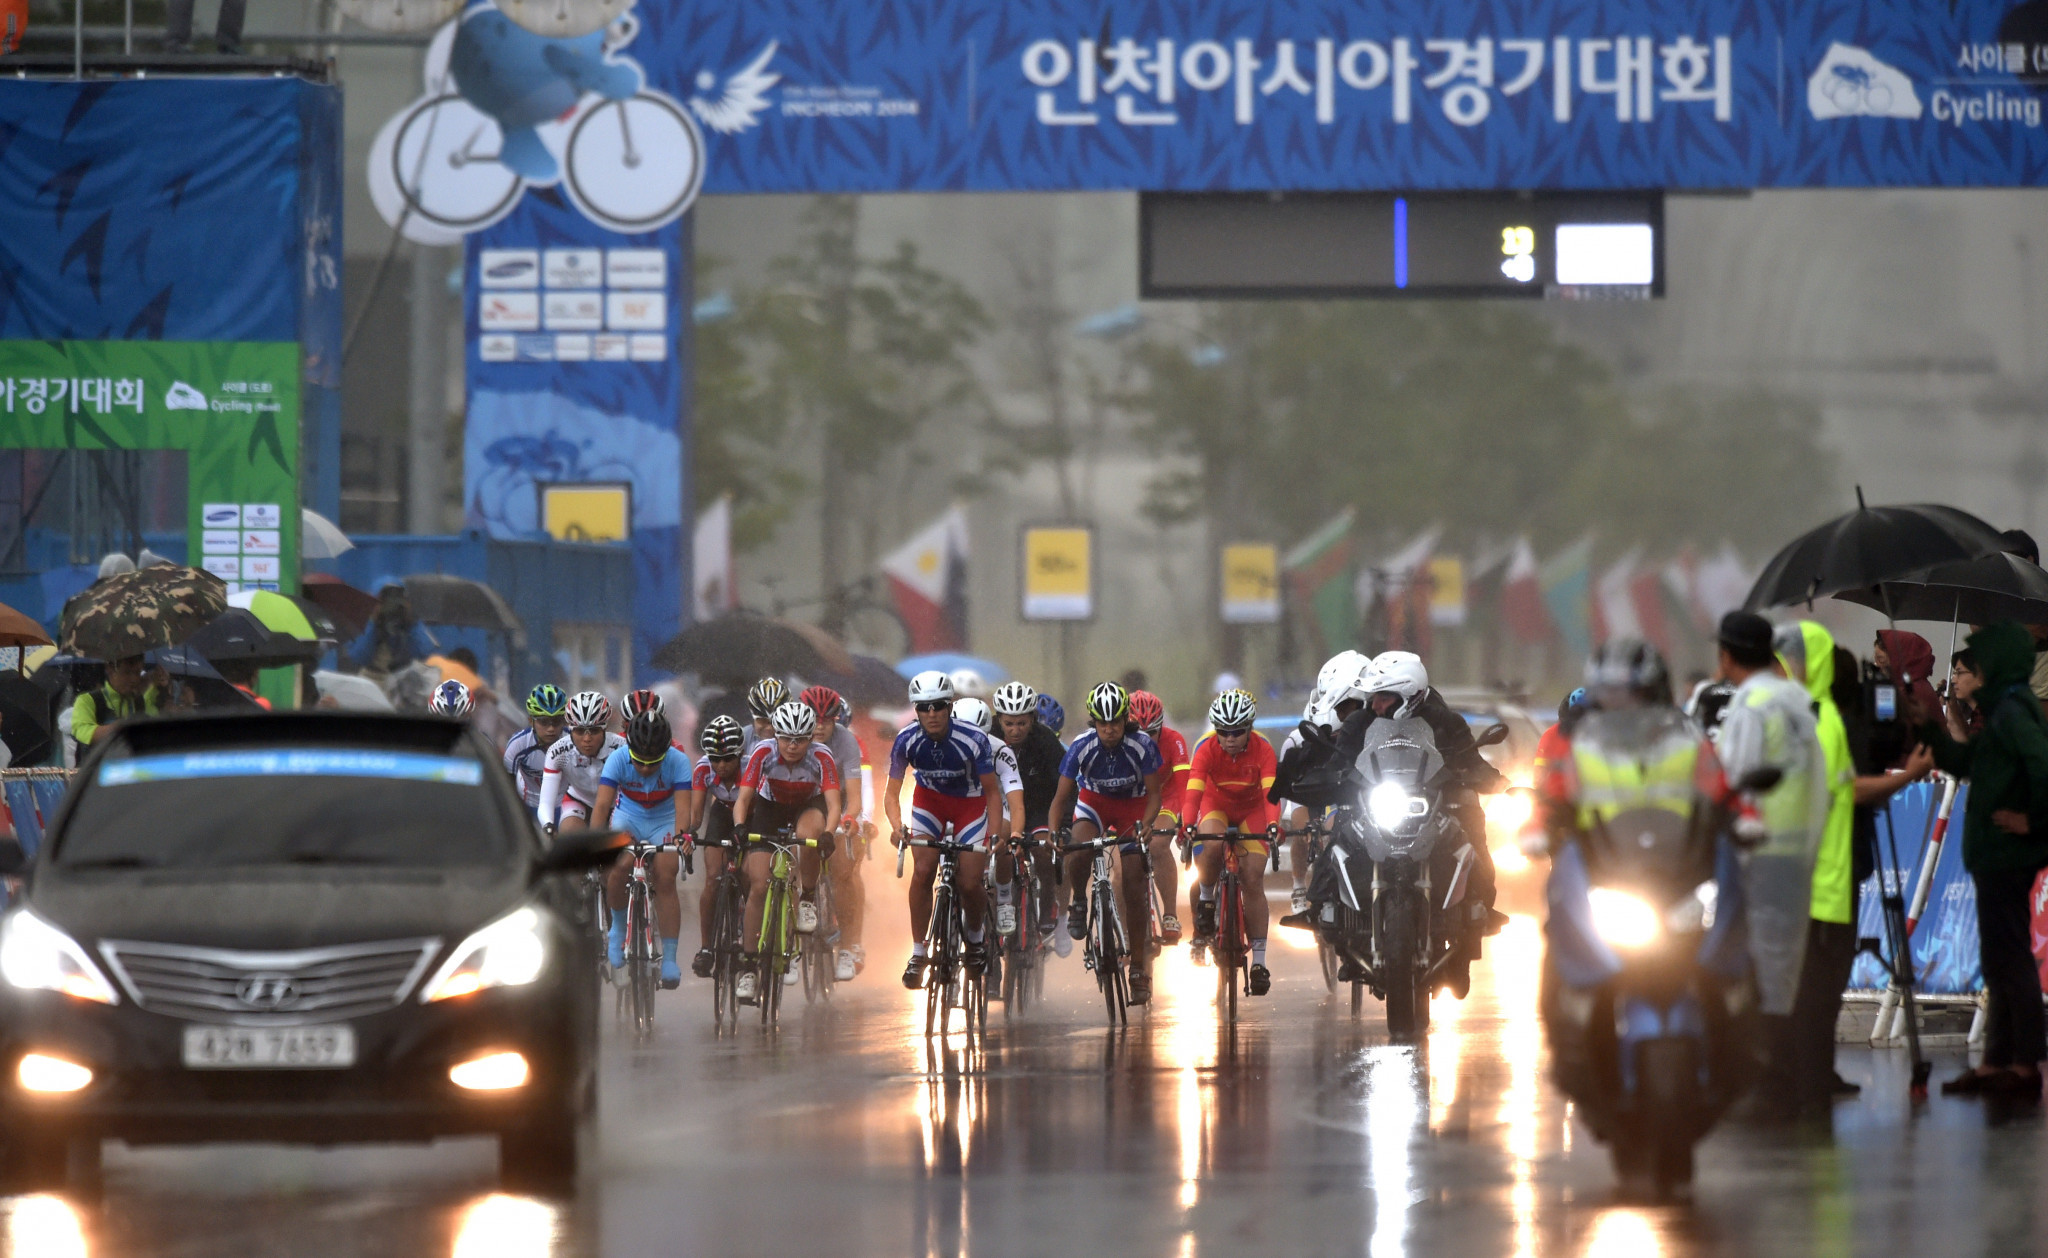 2026 Asian Games host city Shinshiro launches campaign for safe cycling